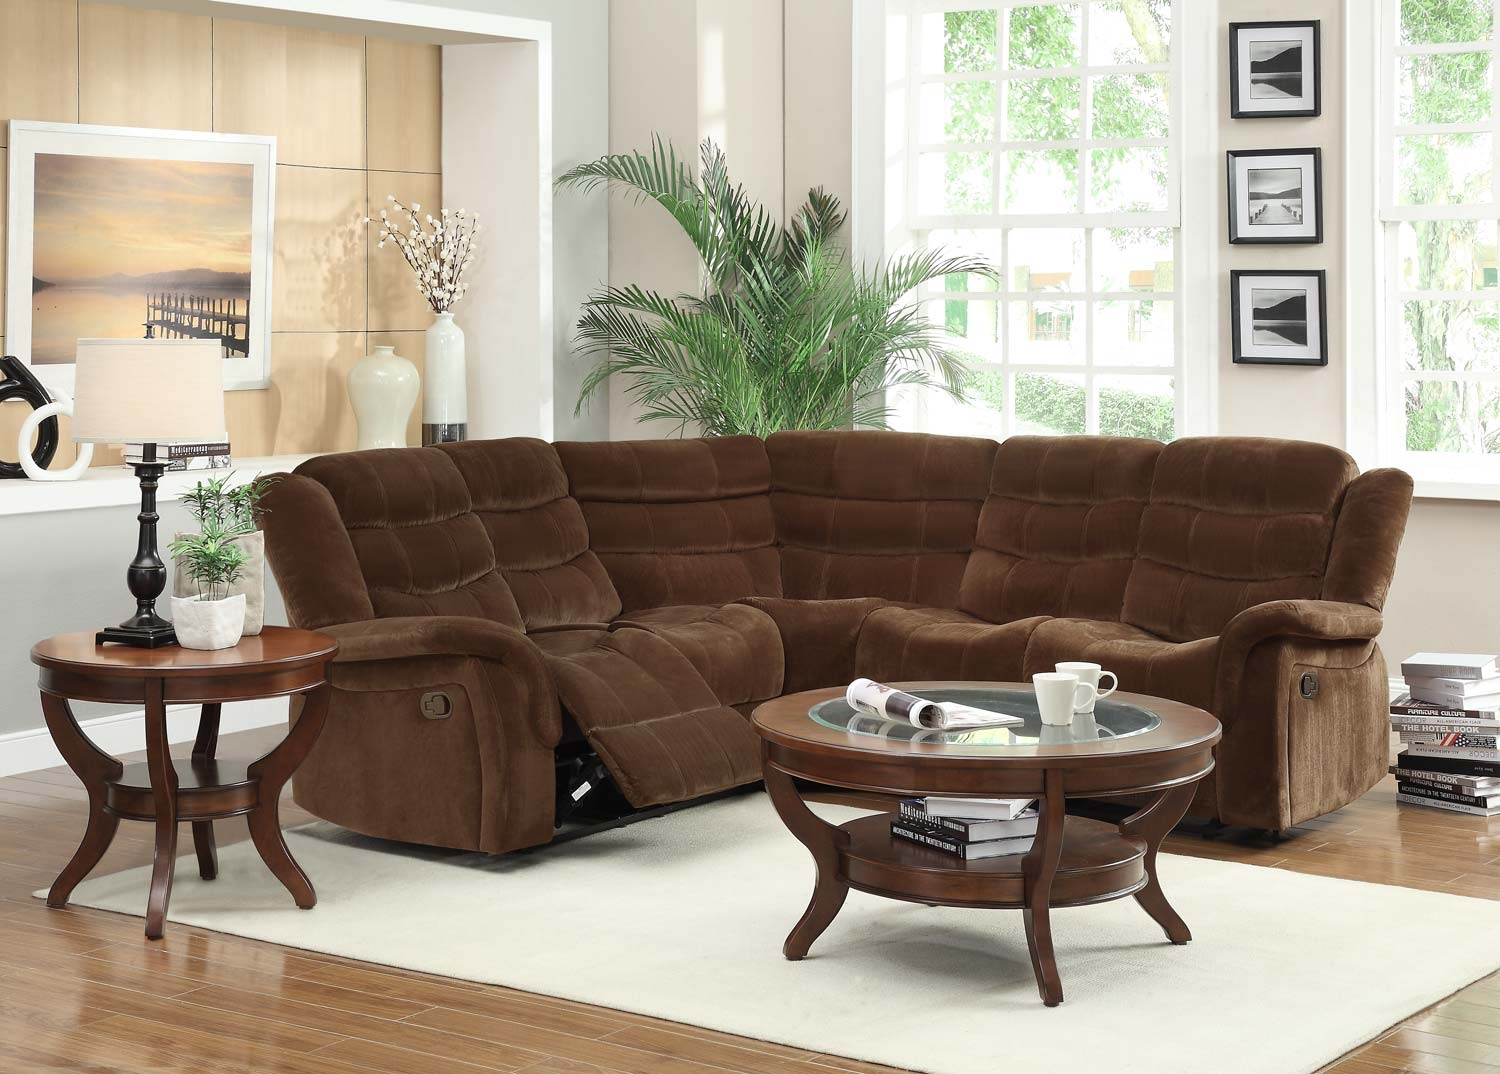 Homelegance Norton Reclining Sectional Sofa Set Chocolate In Chocolate Brown Sectional Sofa (View 13 of 15)